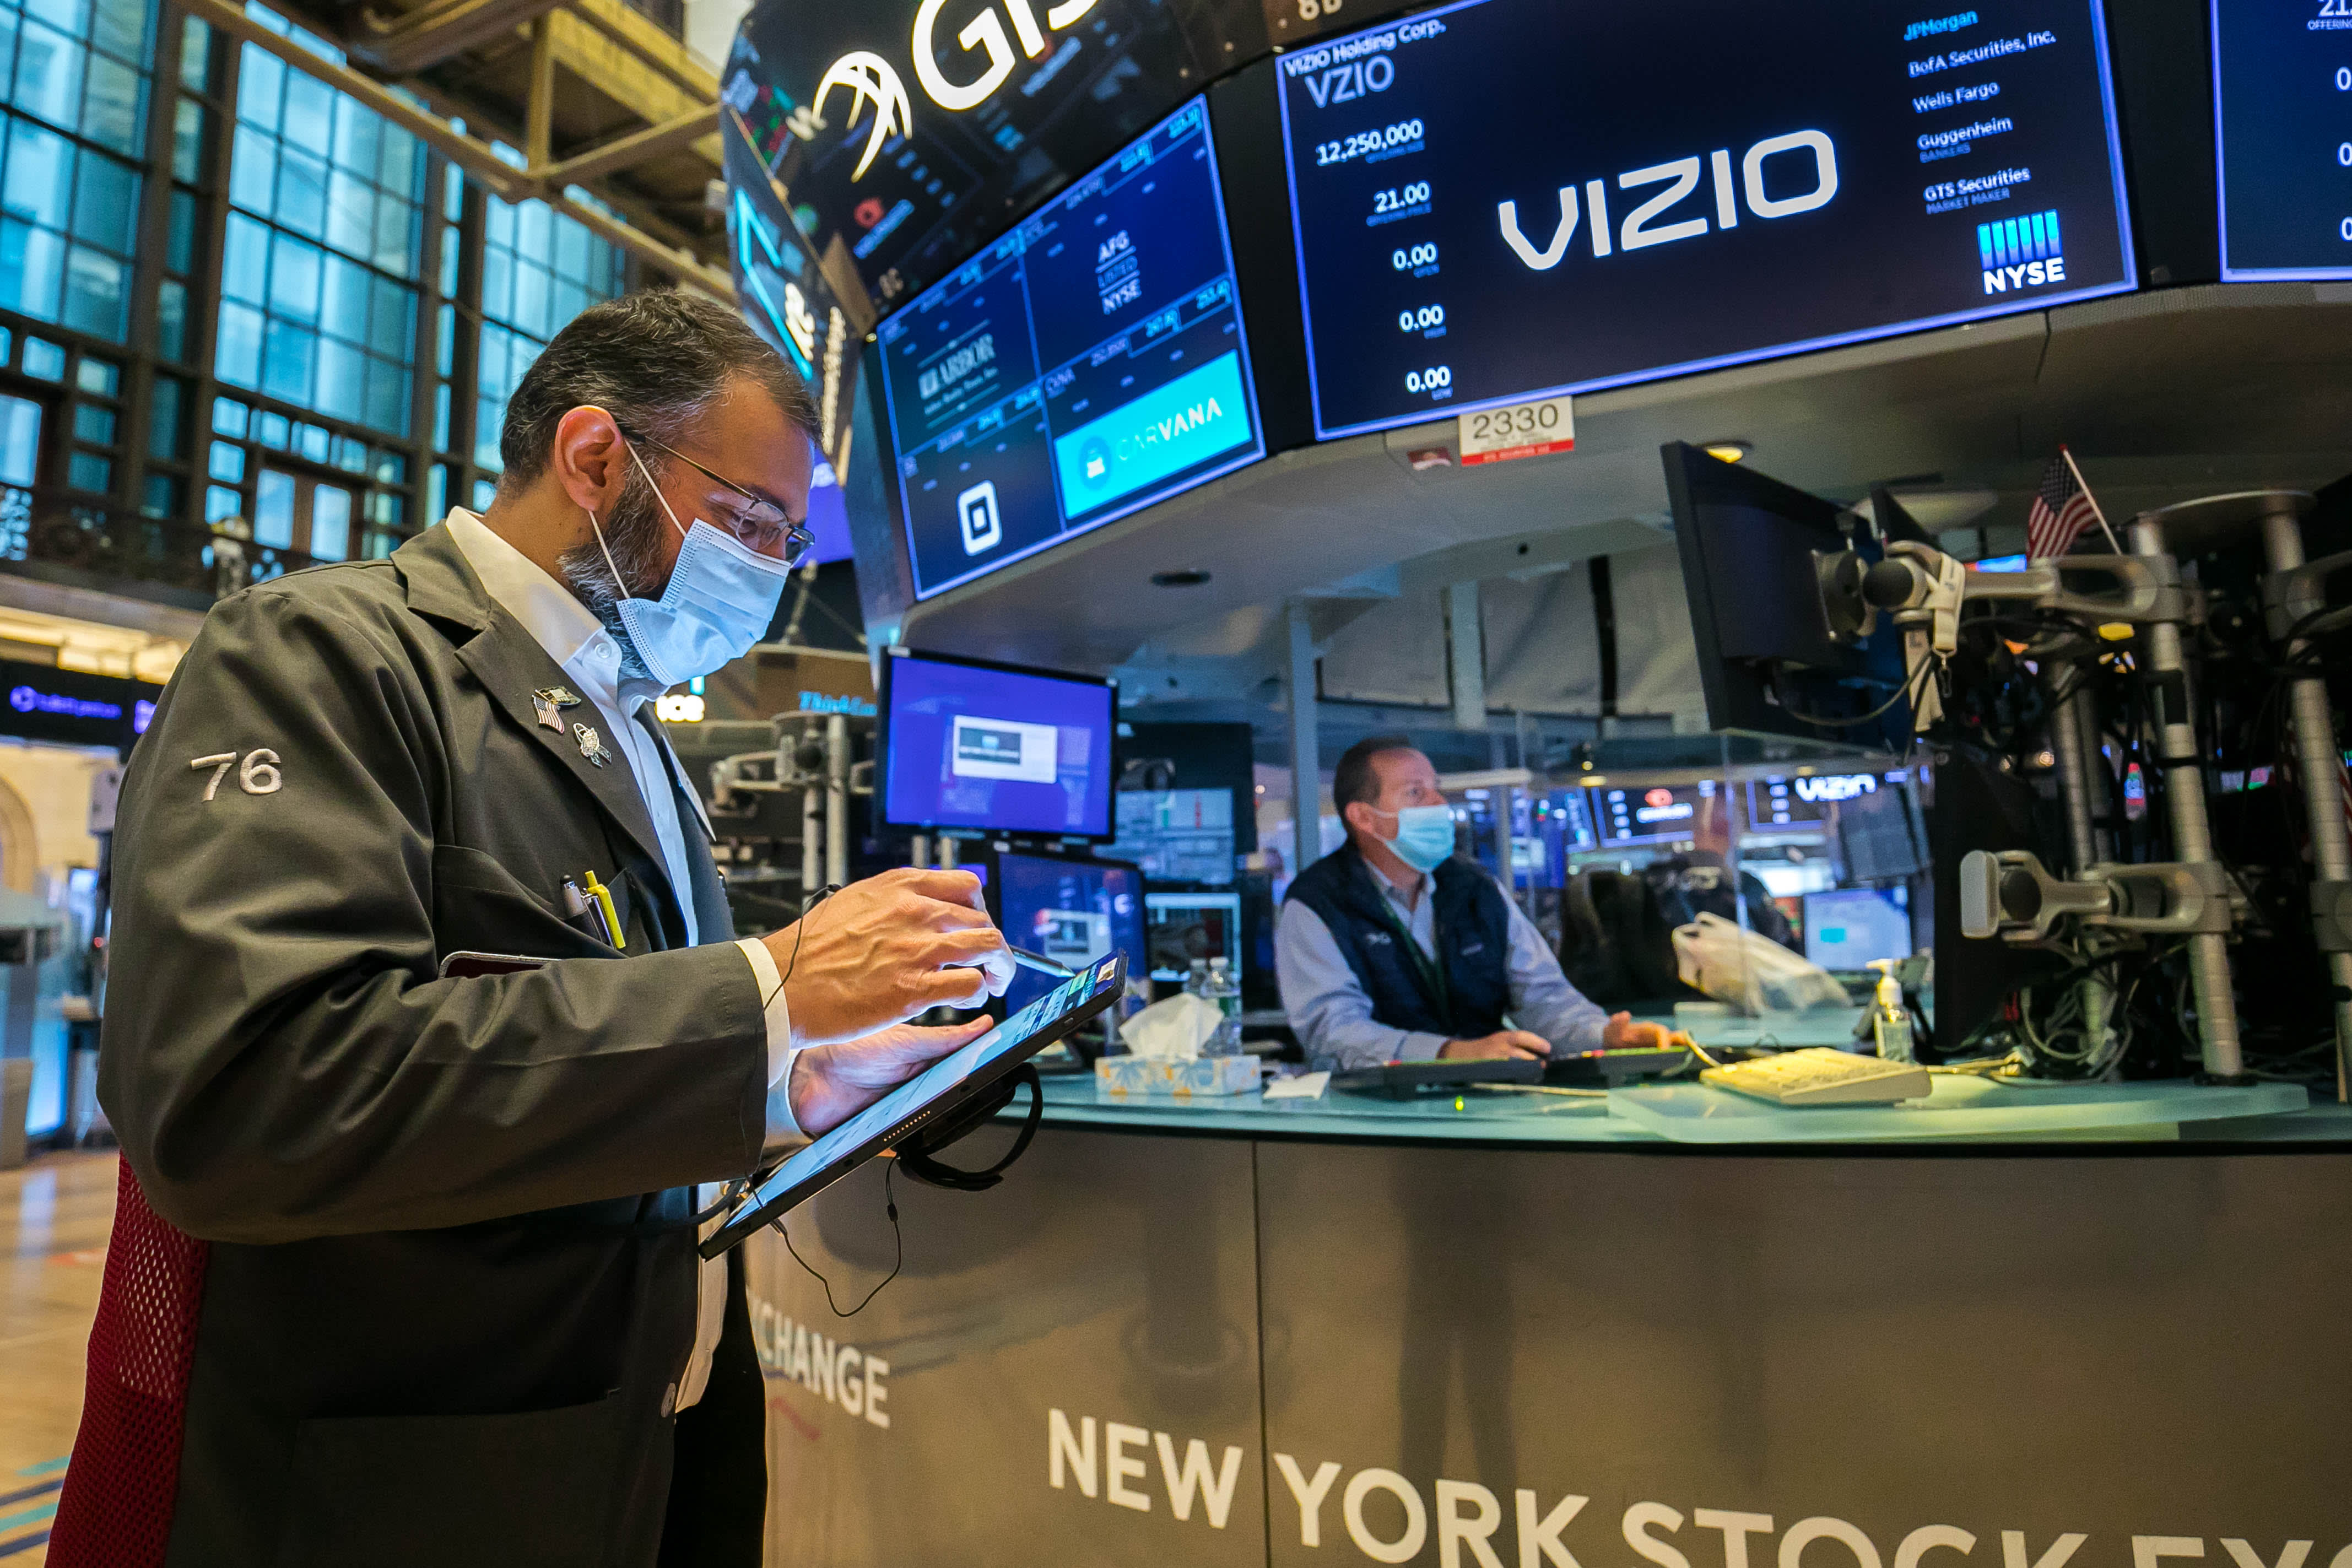 Stock futures flat after Fed keeps interest rates near zero